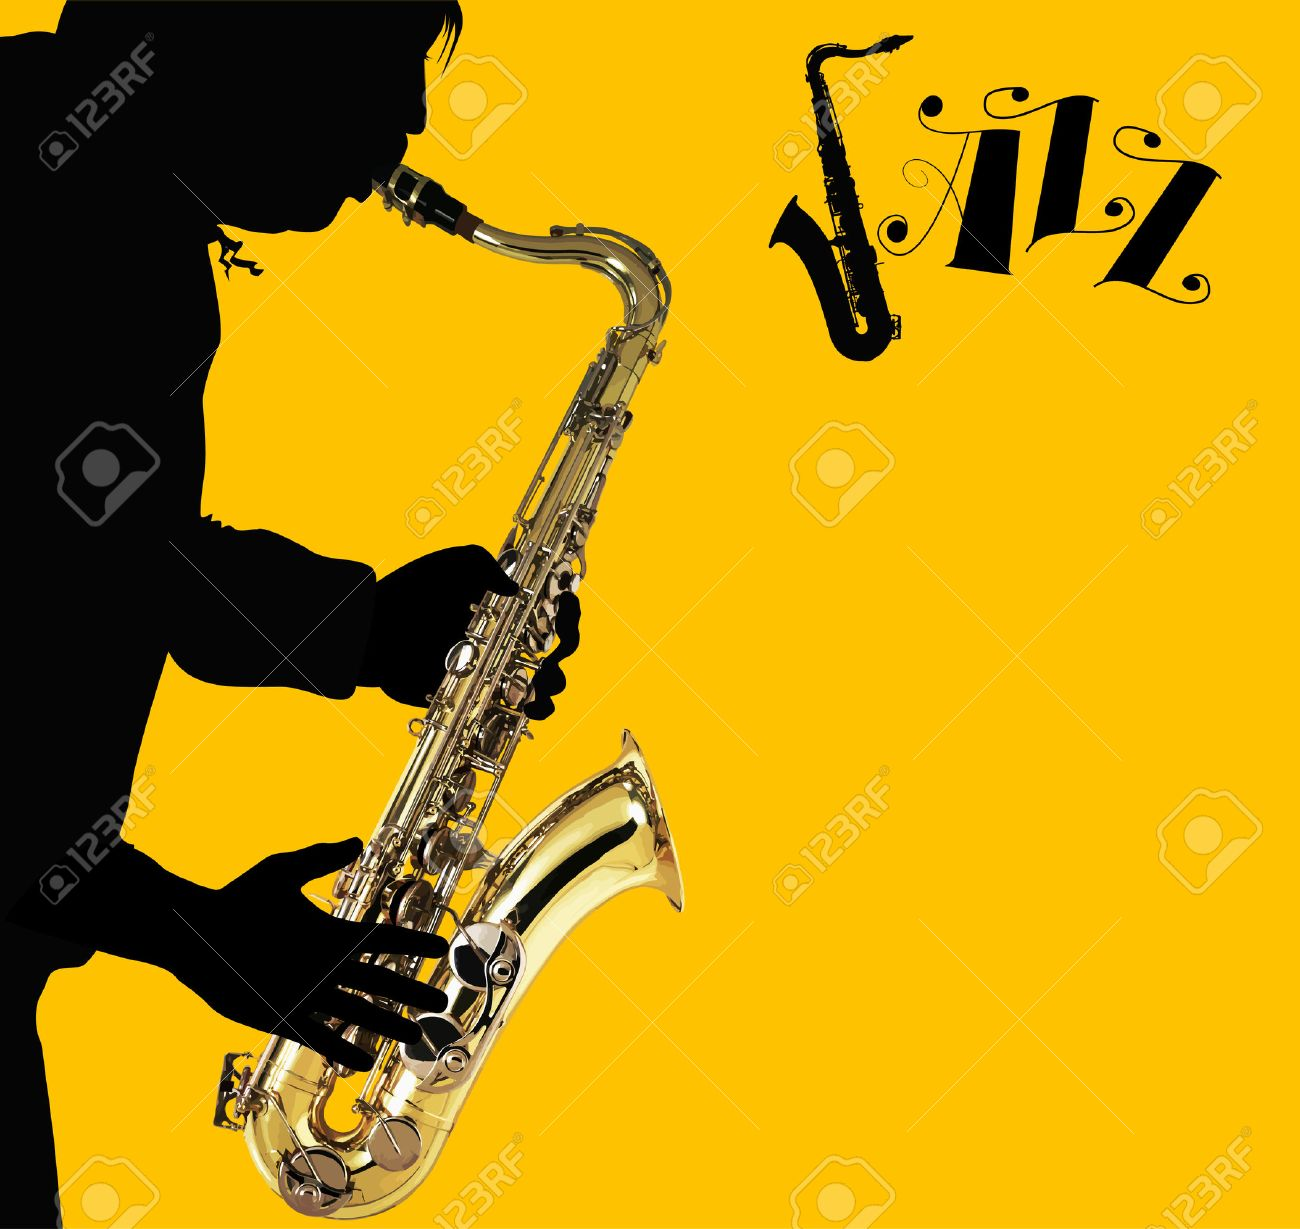 1000  images about saxophone music on Pinterest